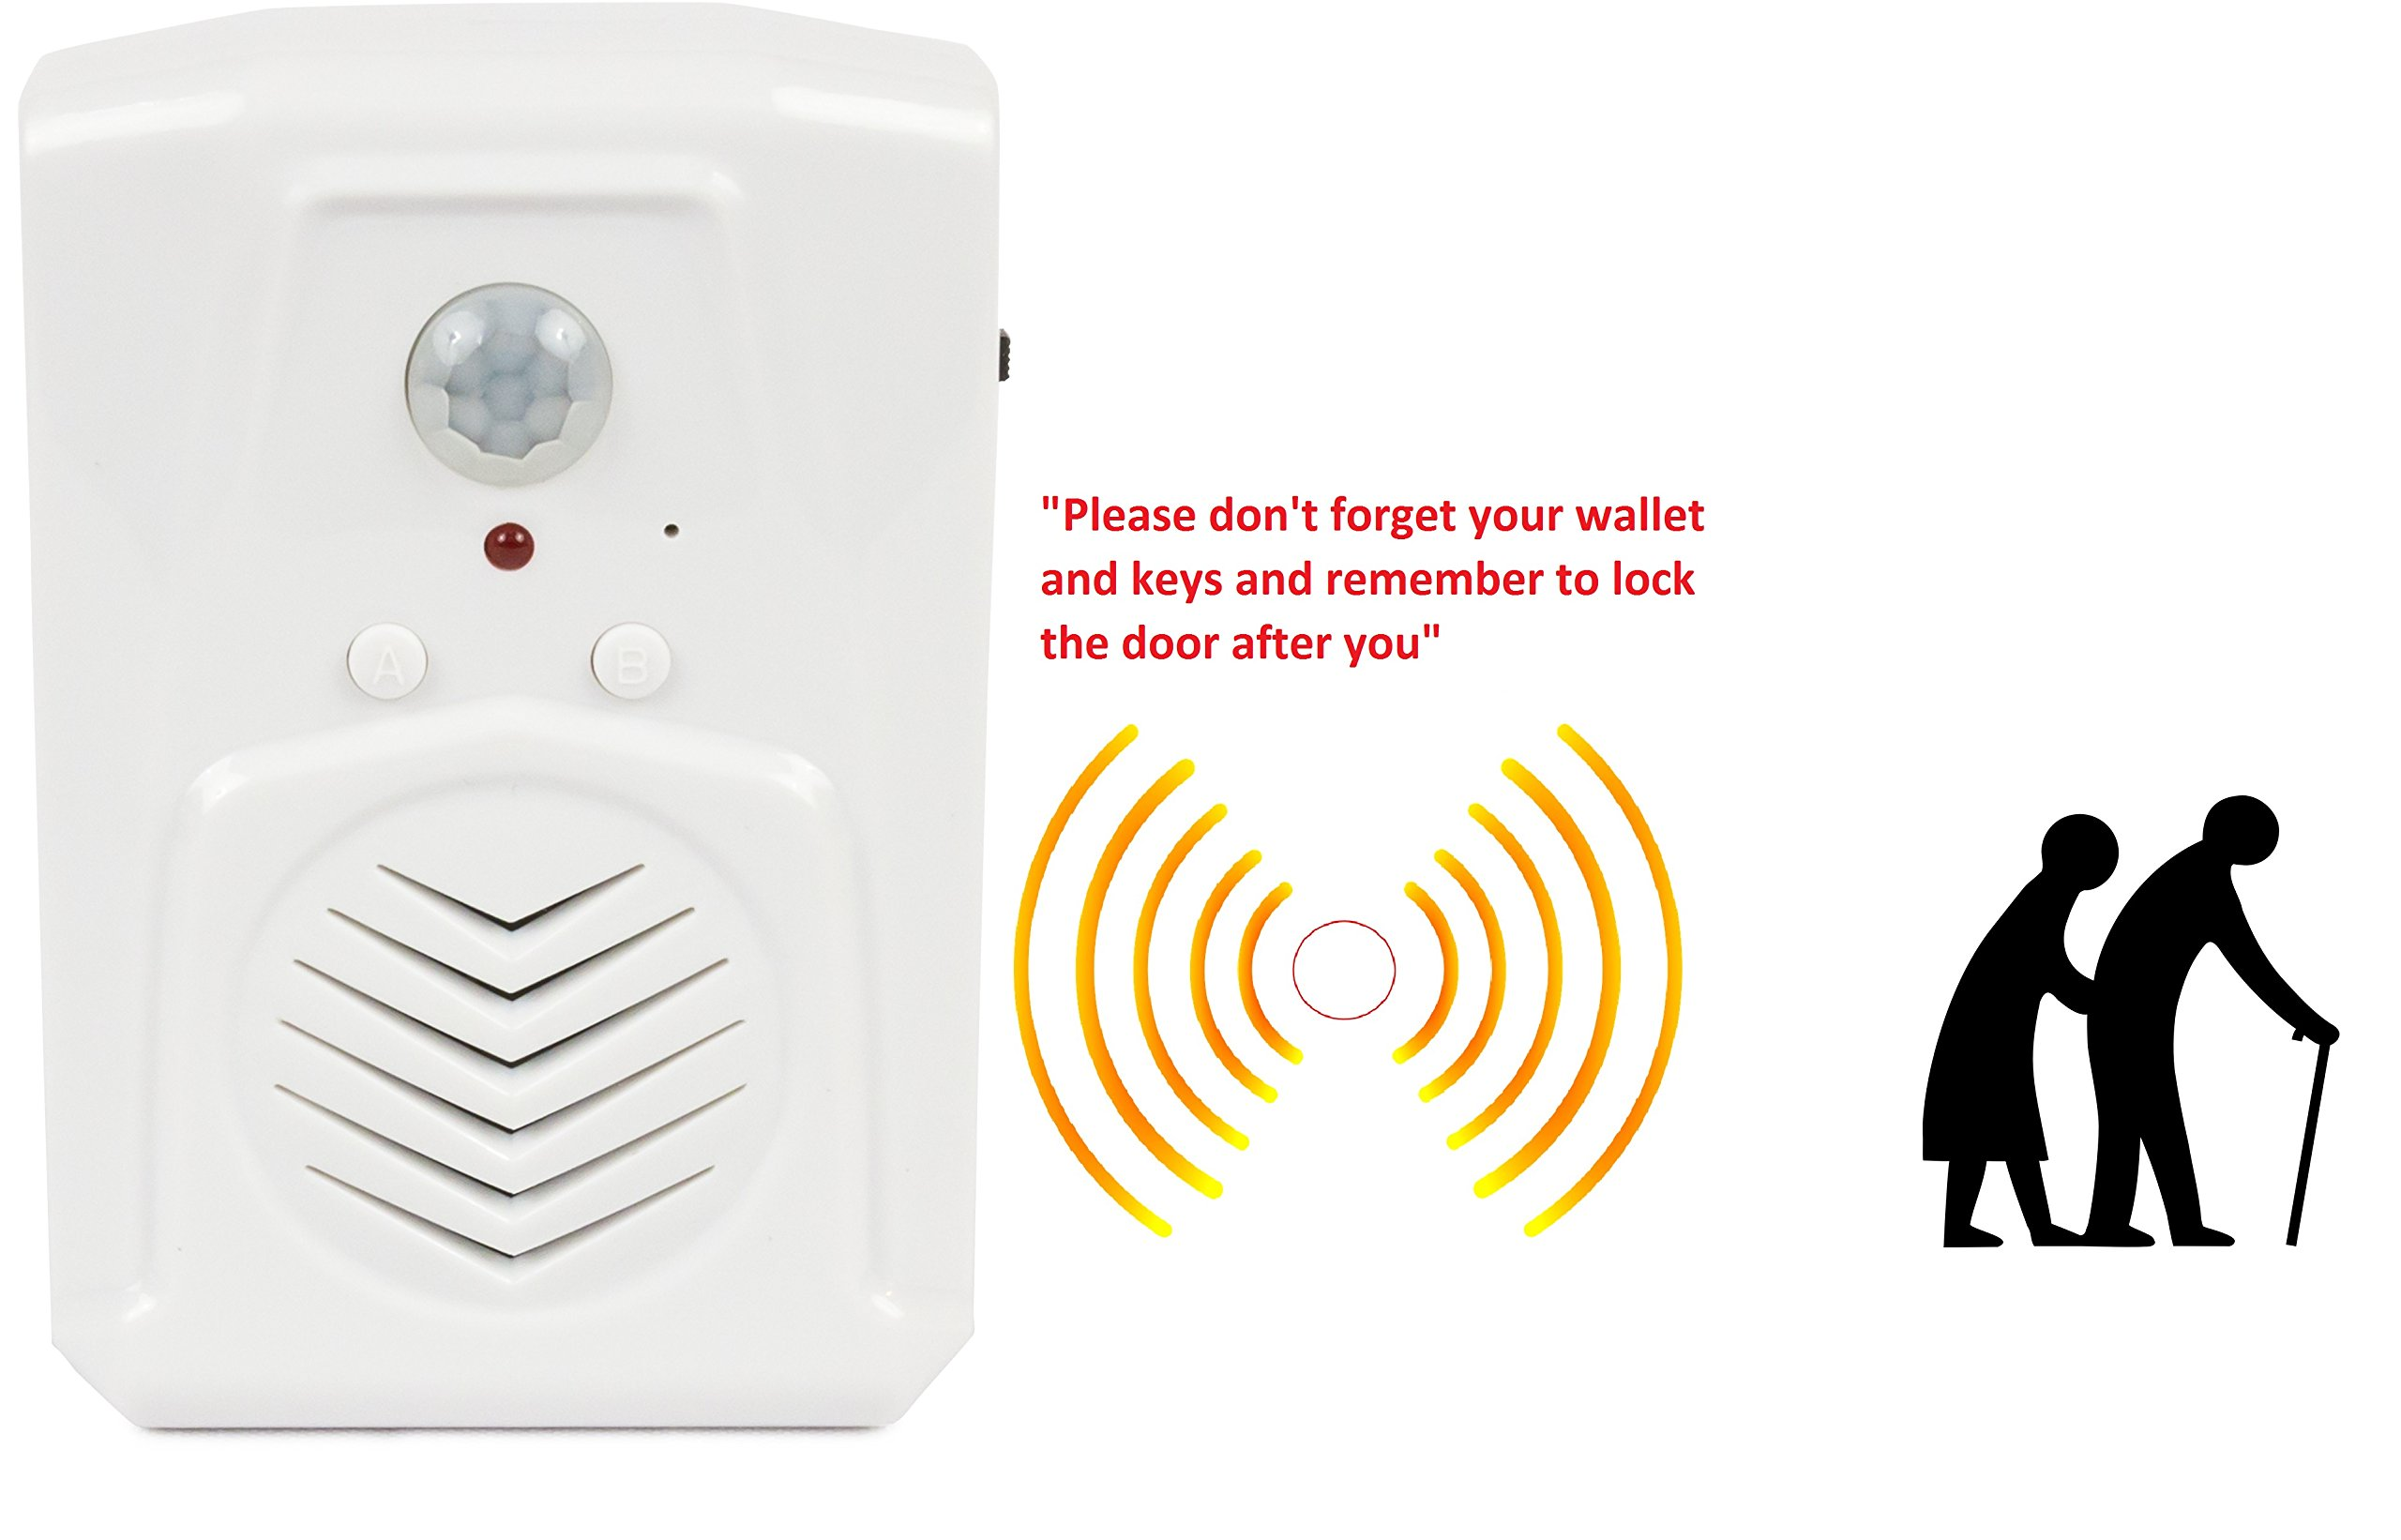 Motion Activated Voice Player with Built-in Microphone, Recordable – Perfect for Independent Living, Point of Sale Advertising, Door Greeter, Exhibits, Tradeshows, Daily Reminders, Entry Alert by SierraTeck (Image #3)